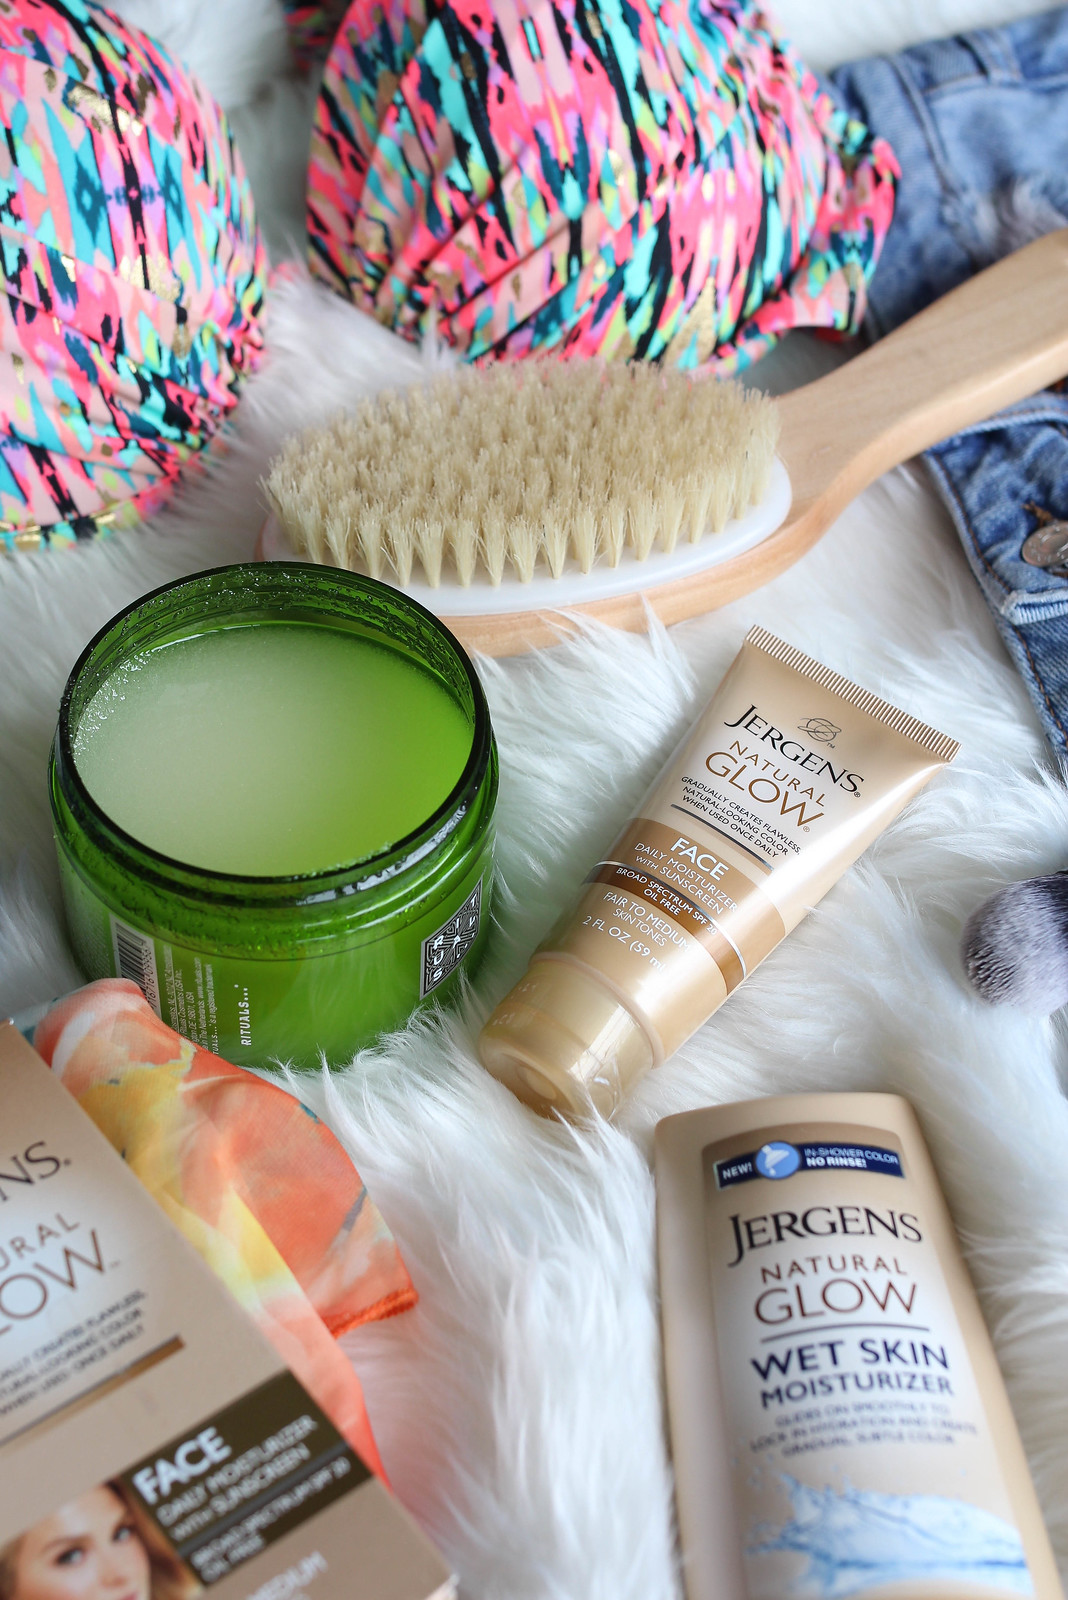 Jergens Natural Glow Face Daily Moisturizer and Wet Skin Moisturizer